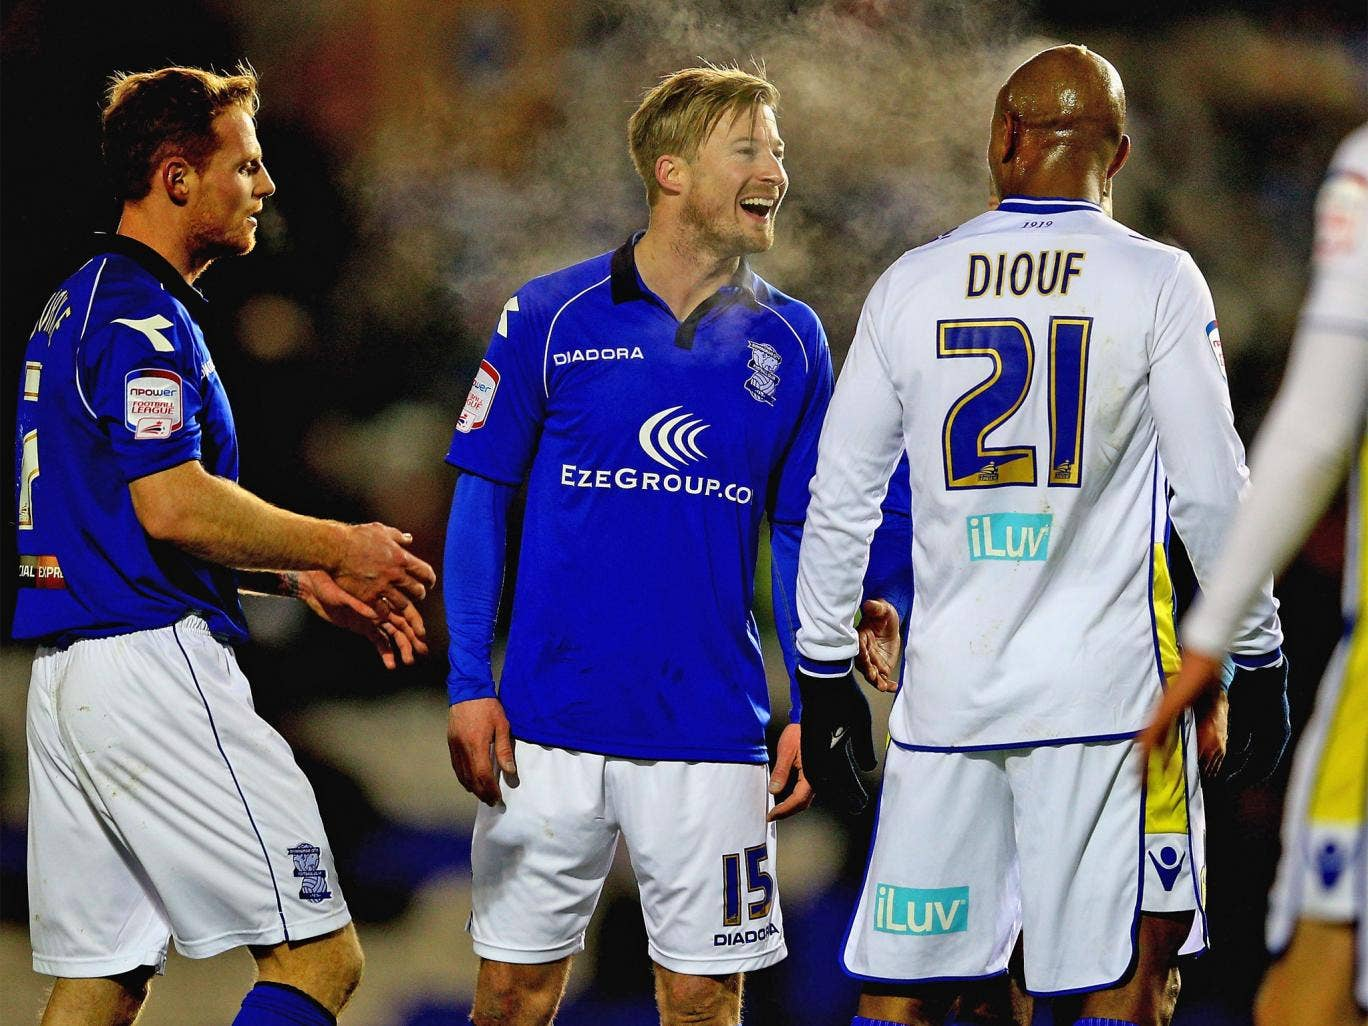 Goalscorers Wade Elliot, left, and El Hadji Diouf, share a joke